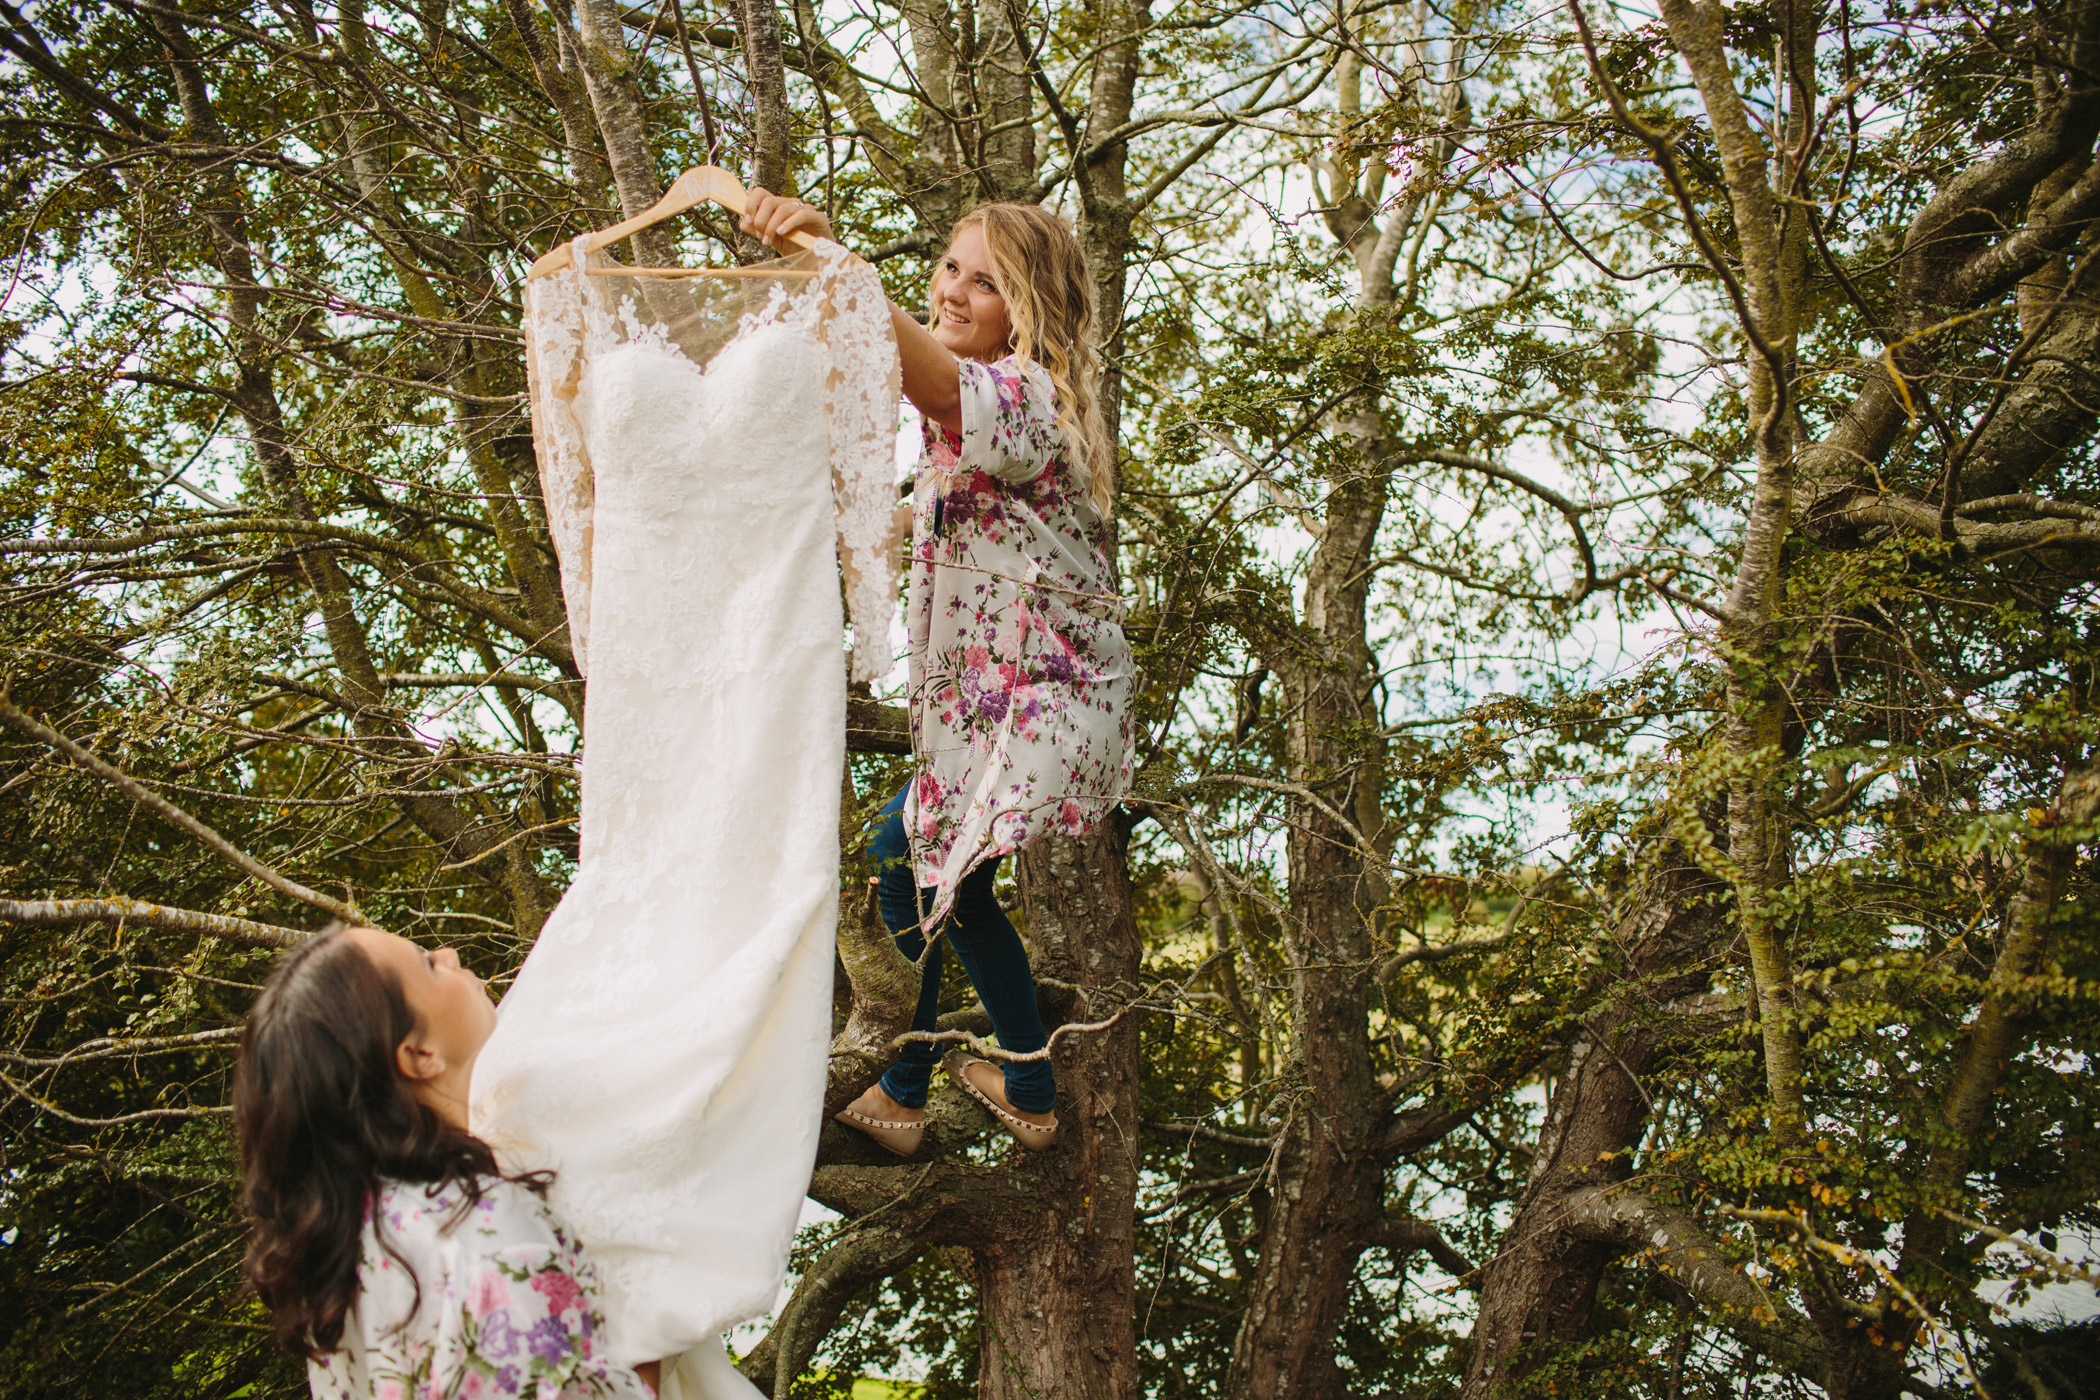 Vancouver Bridesmaids hanging dress